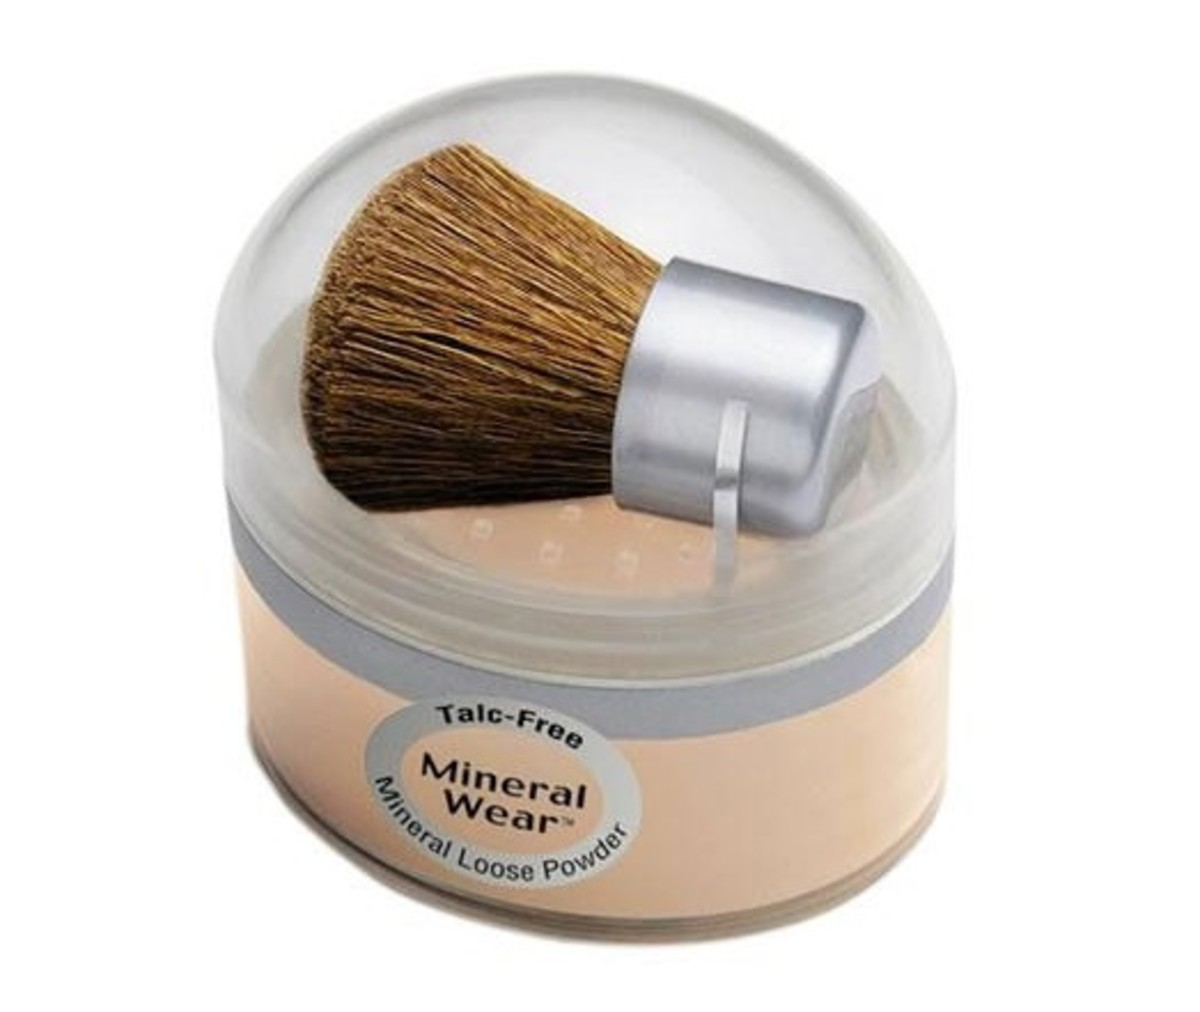 Mineral Wear®Talc-Free Mineral Loose Powder